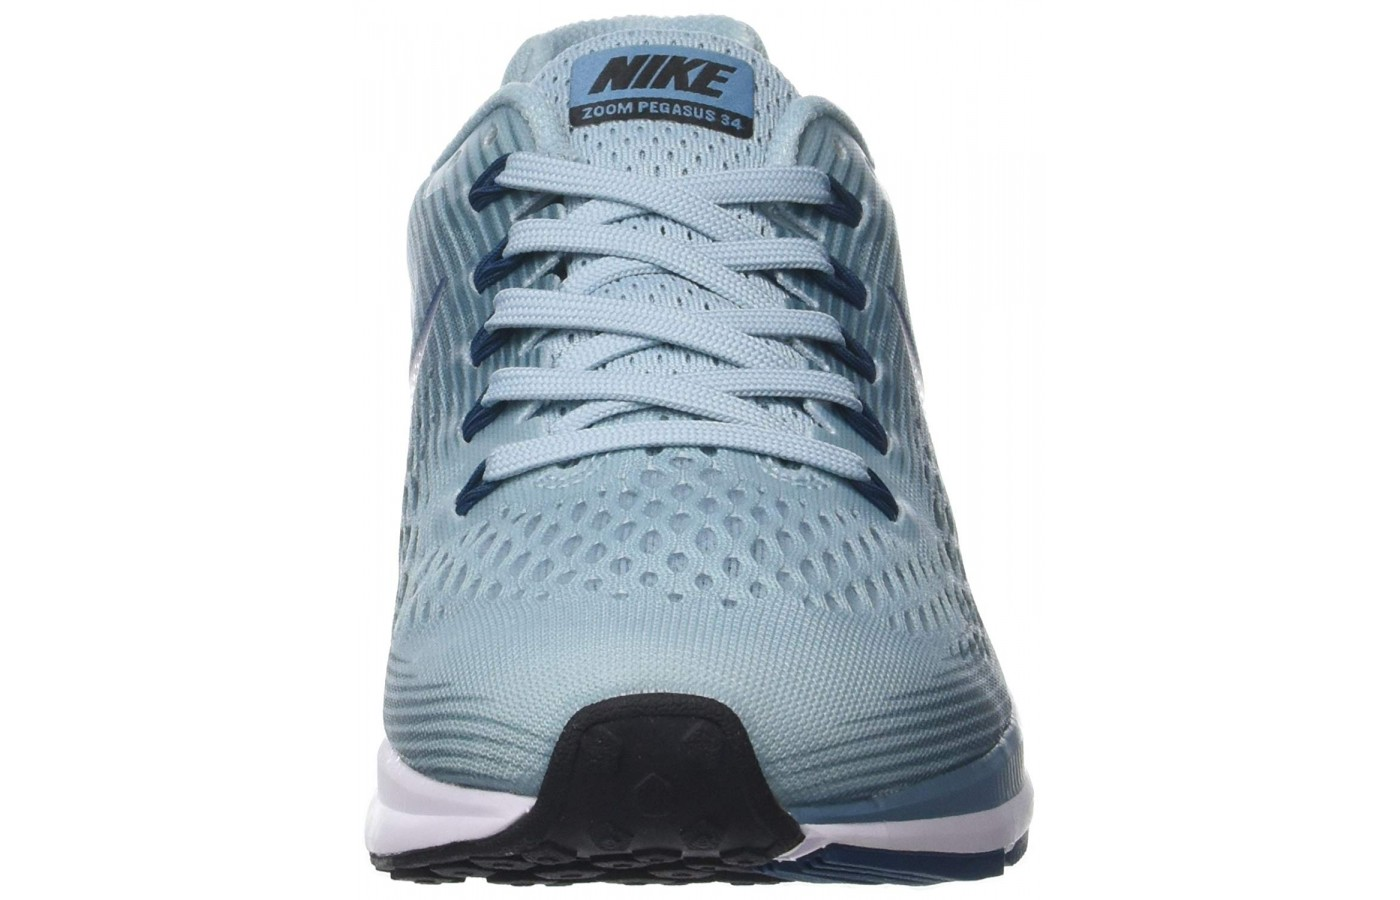 The Nike Air Bellas are made with a mesh material on the upper.